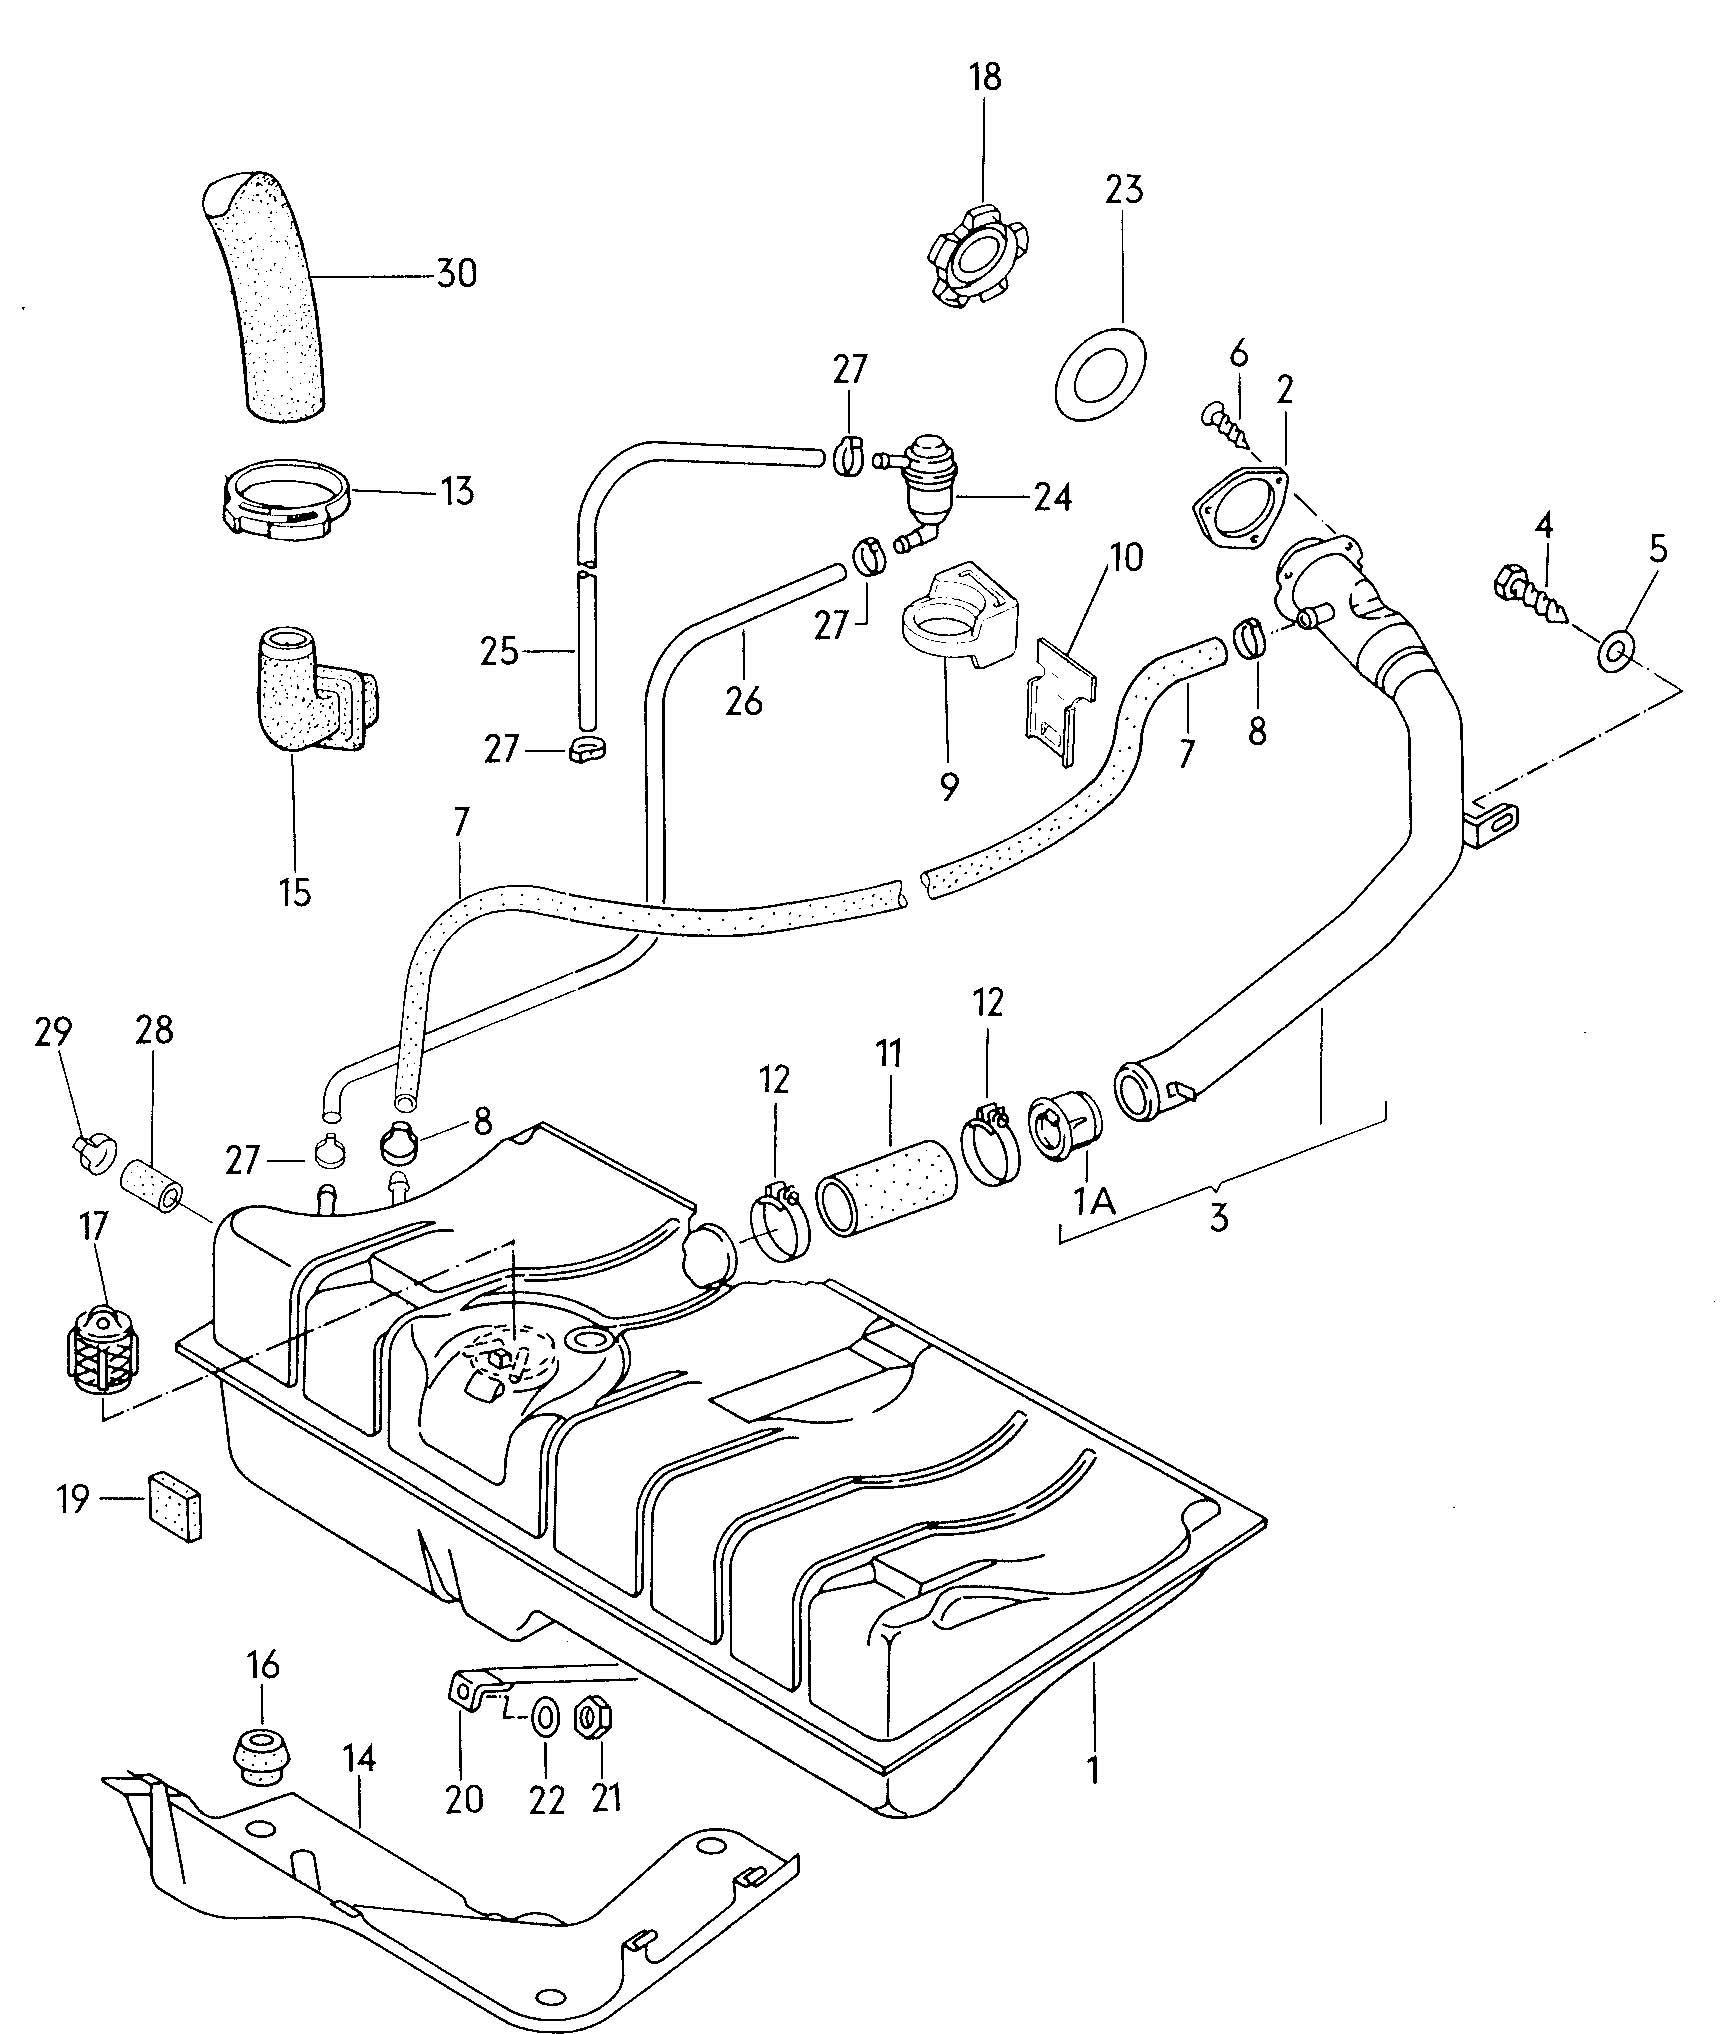 Vw Rabbit Pickup Fuel Tube, Vw, Free Engine Image For User